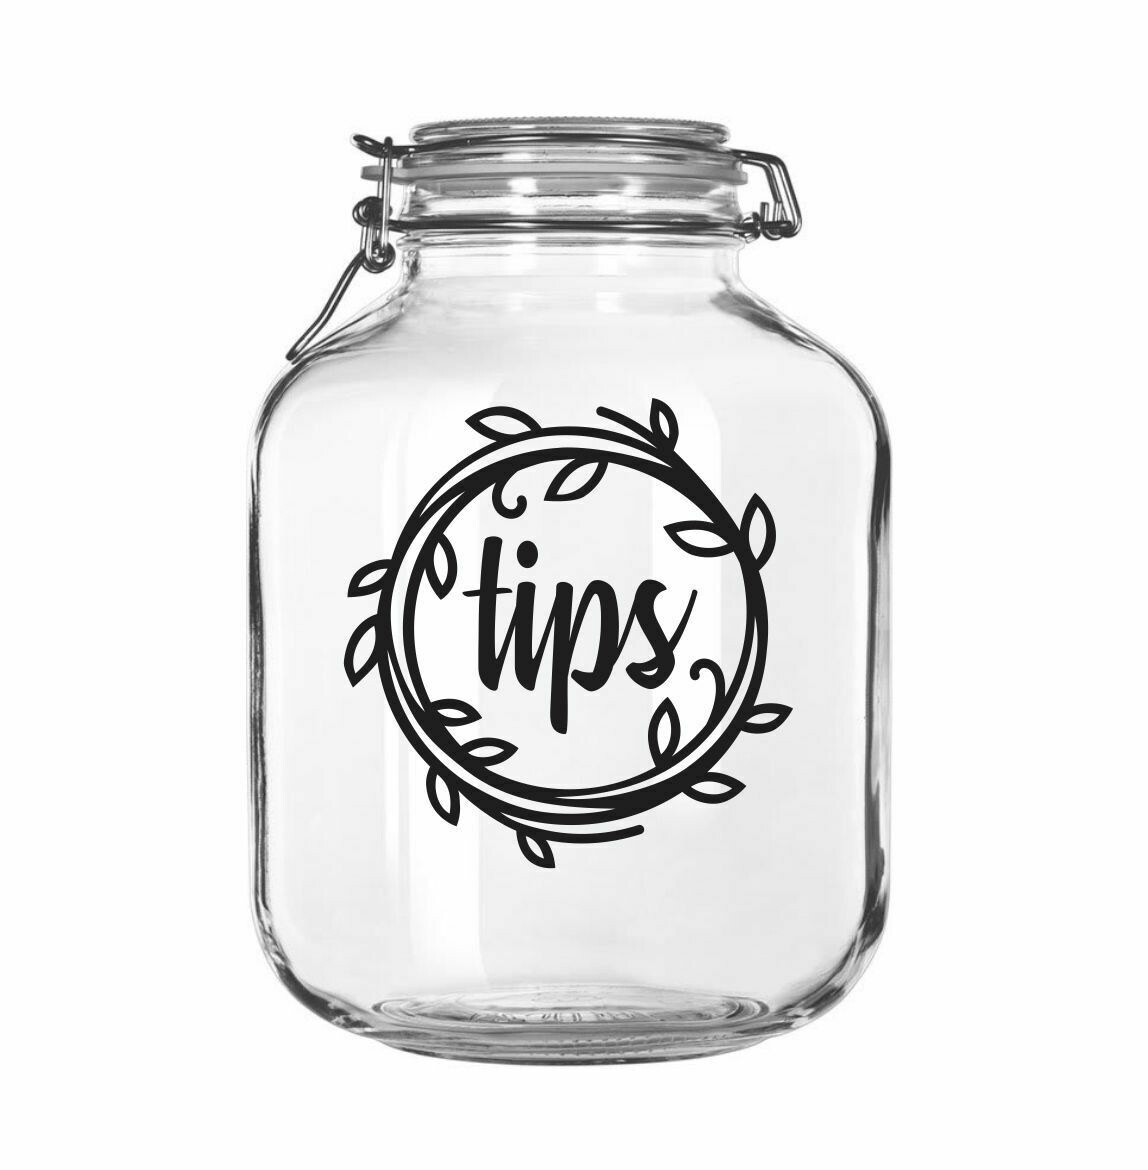 Tip Jar Decal, wreath design